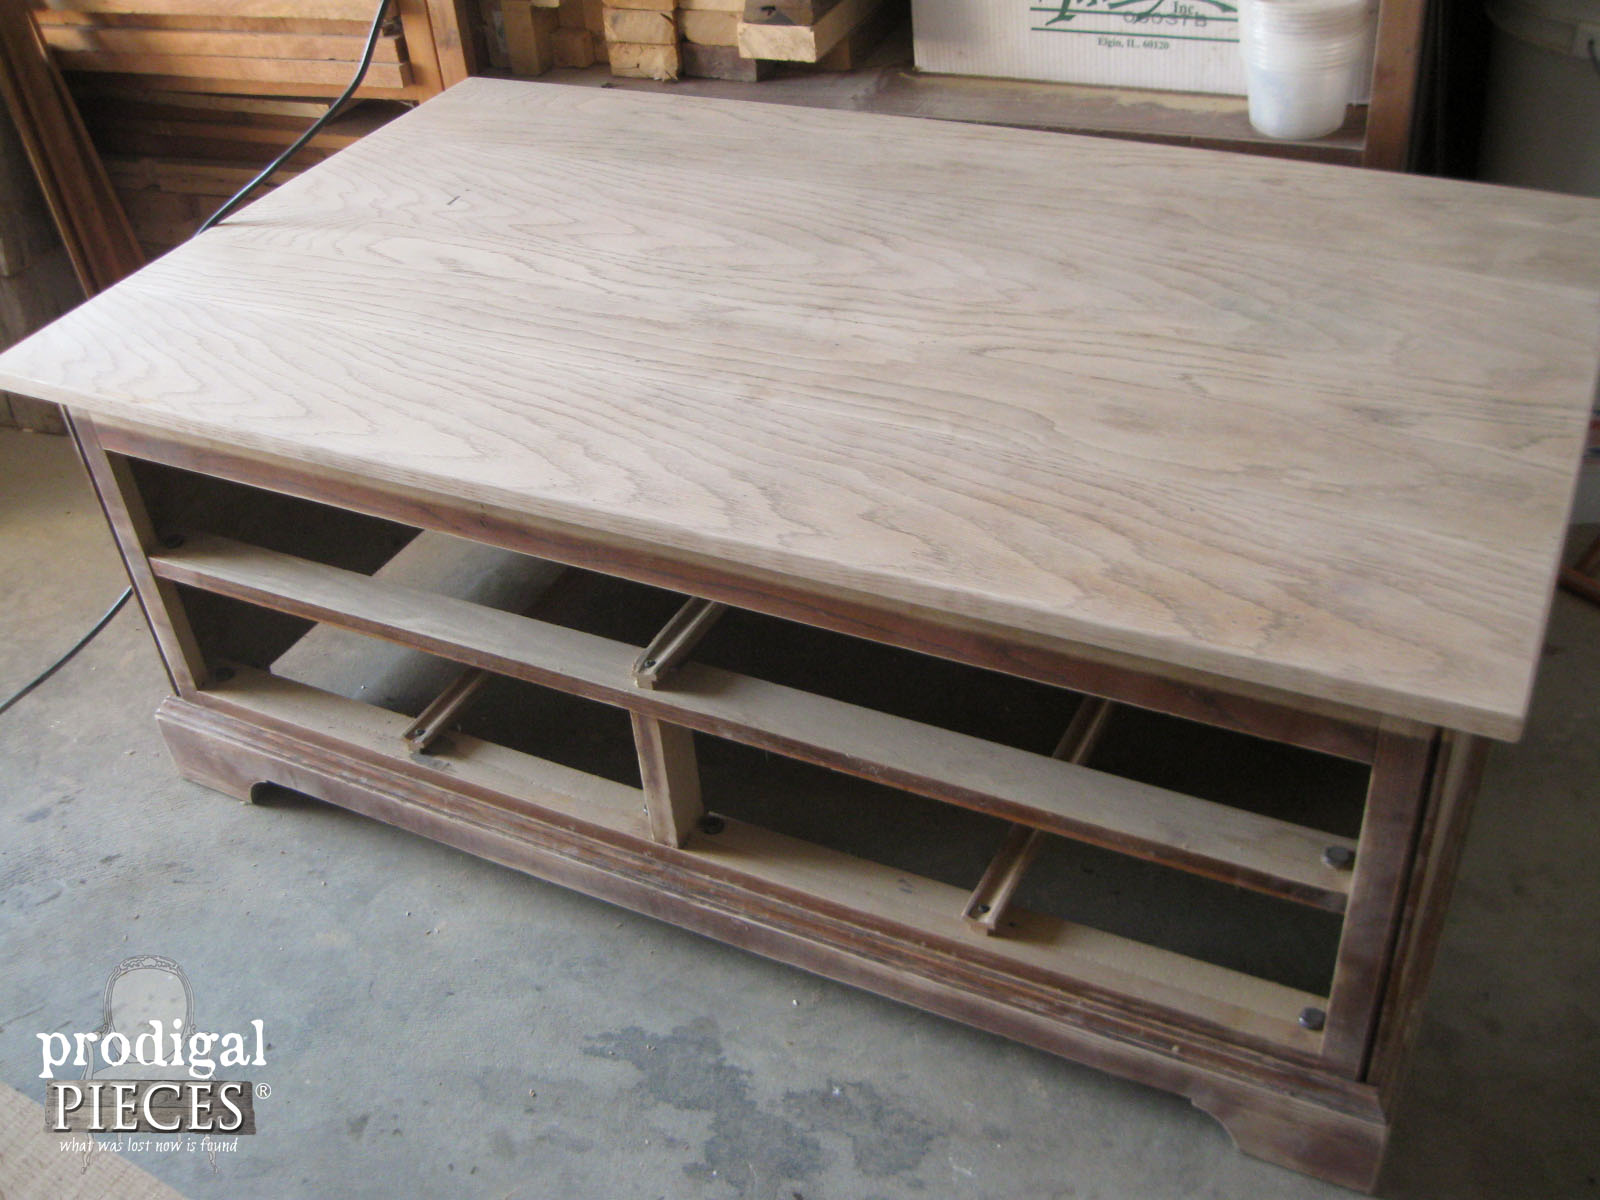 Sanded Coffee Table Ready for Beach Makeover by Prodigal Pieces | www.prodigalpieces.com